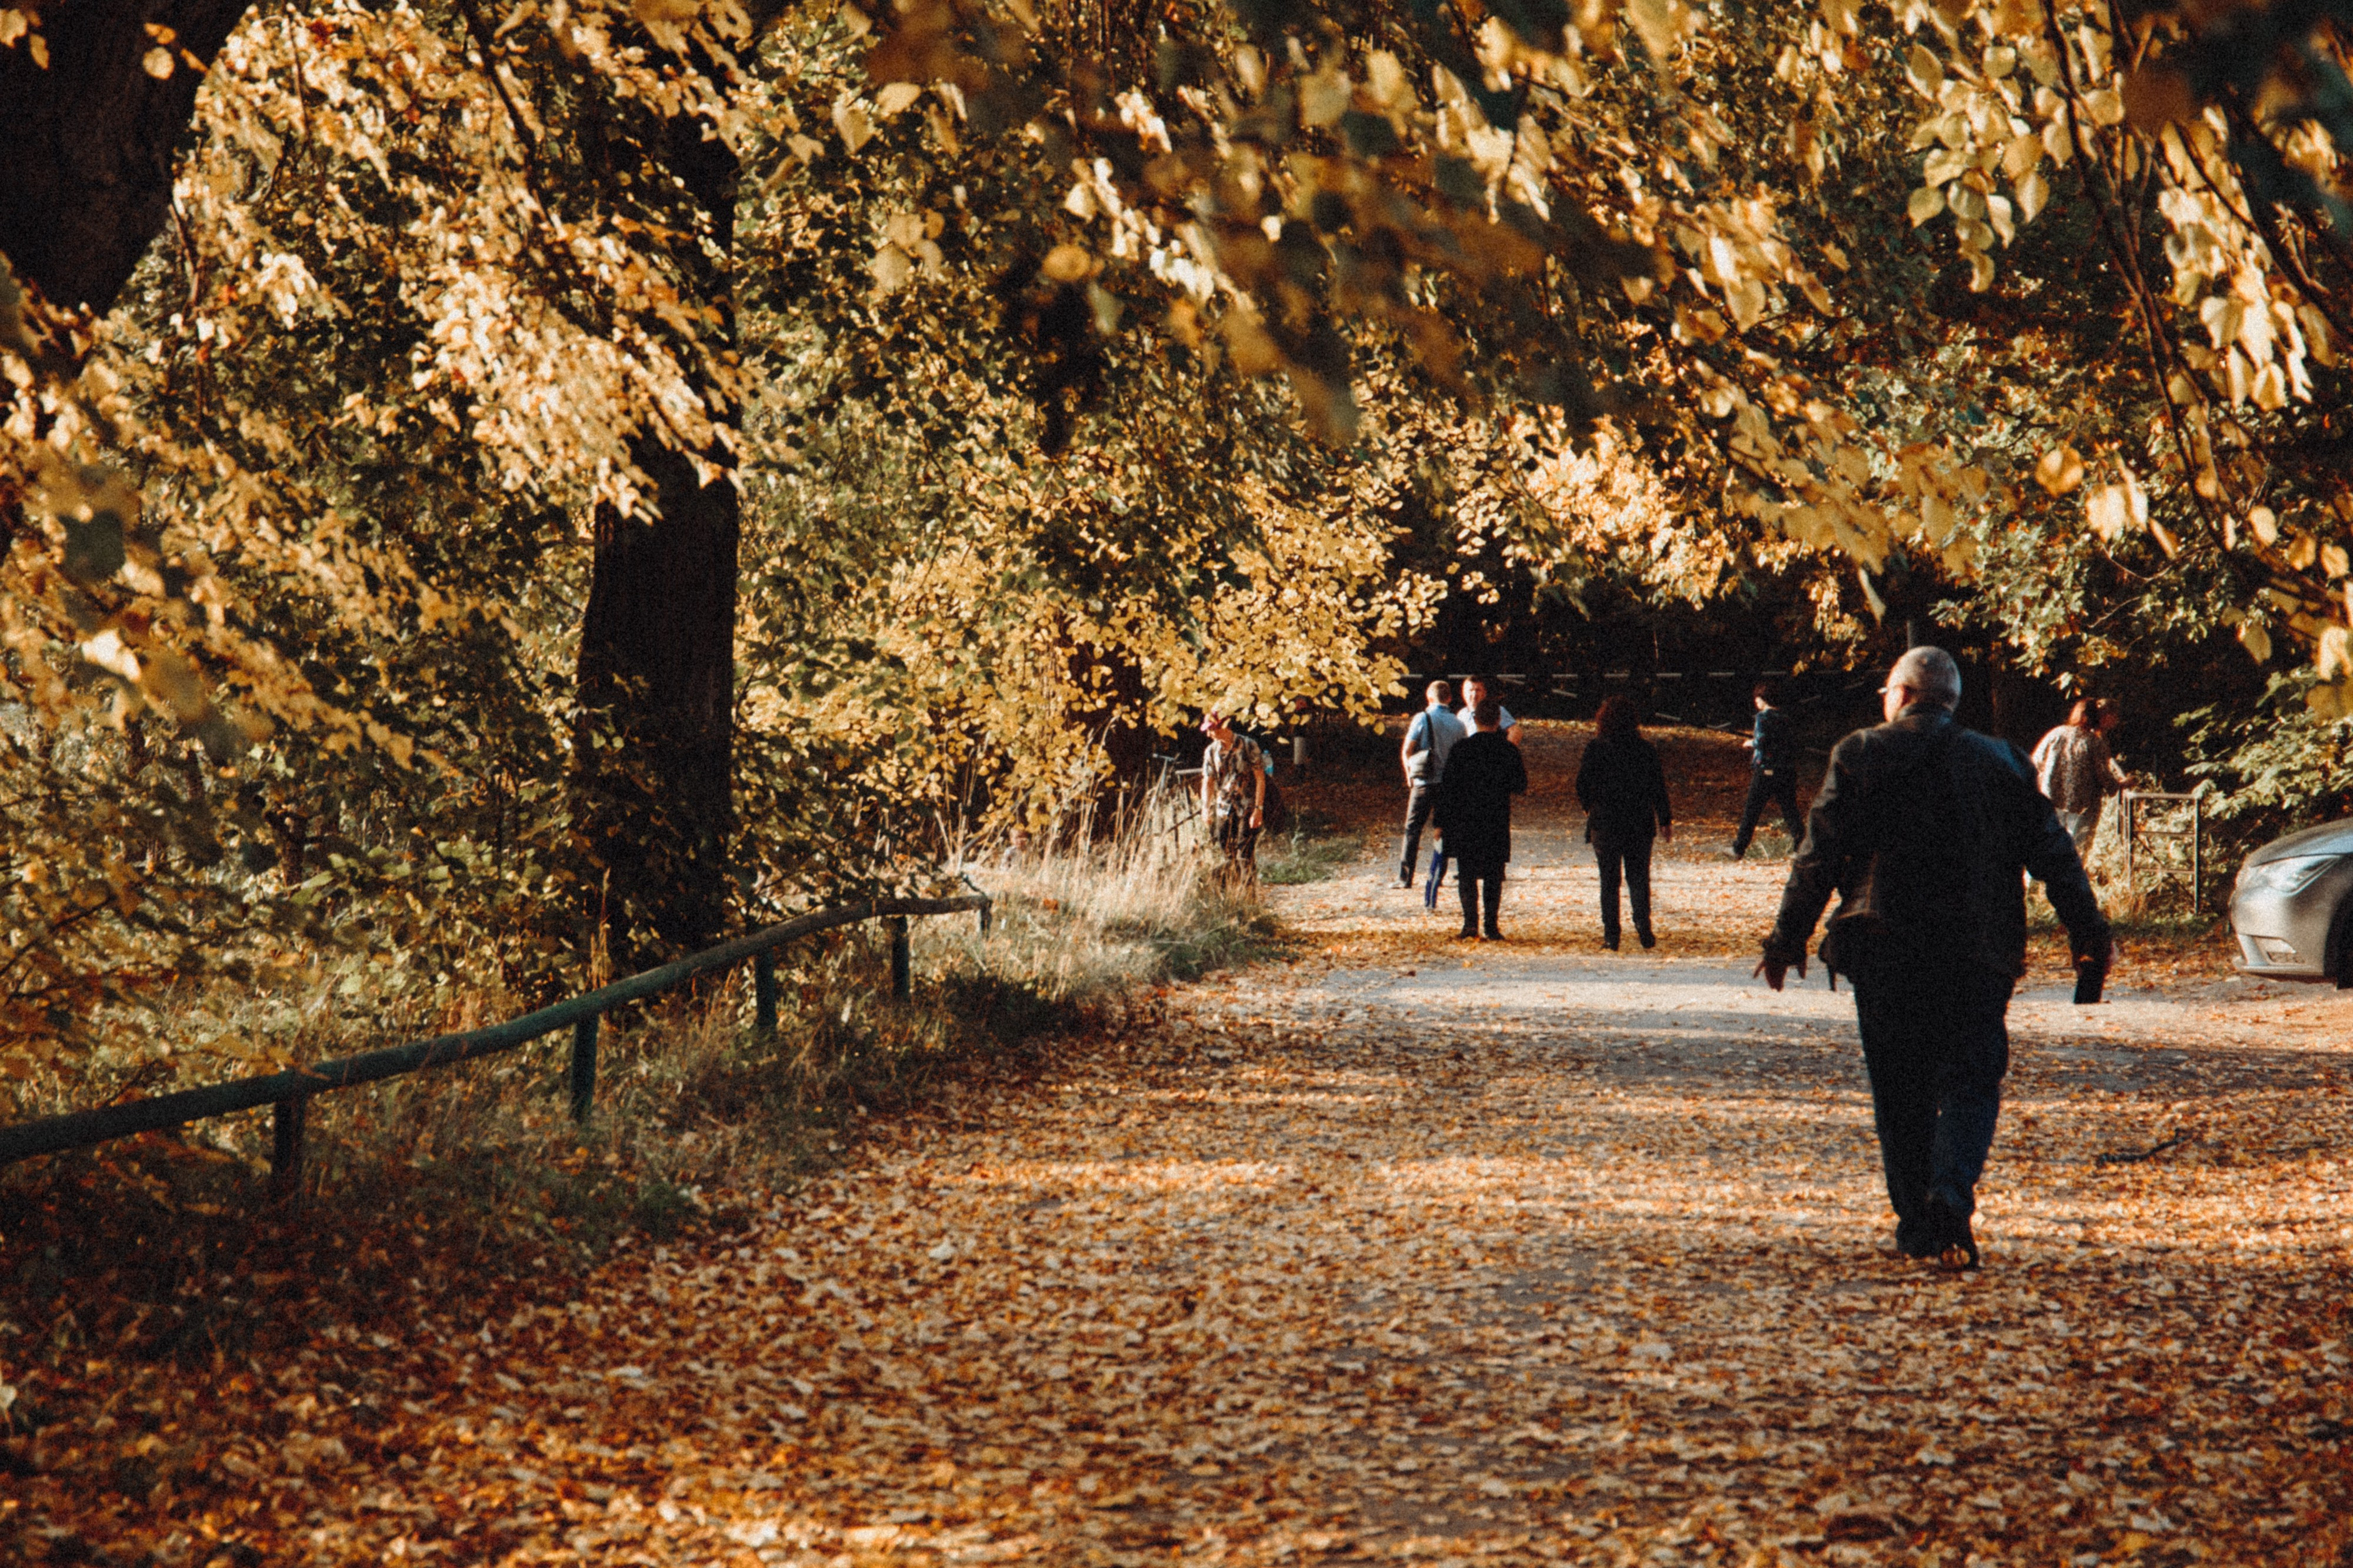 People out for a walk on a tree lined street in Autumn.